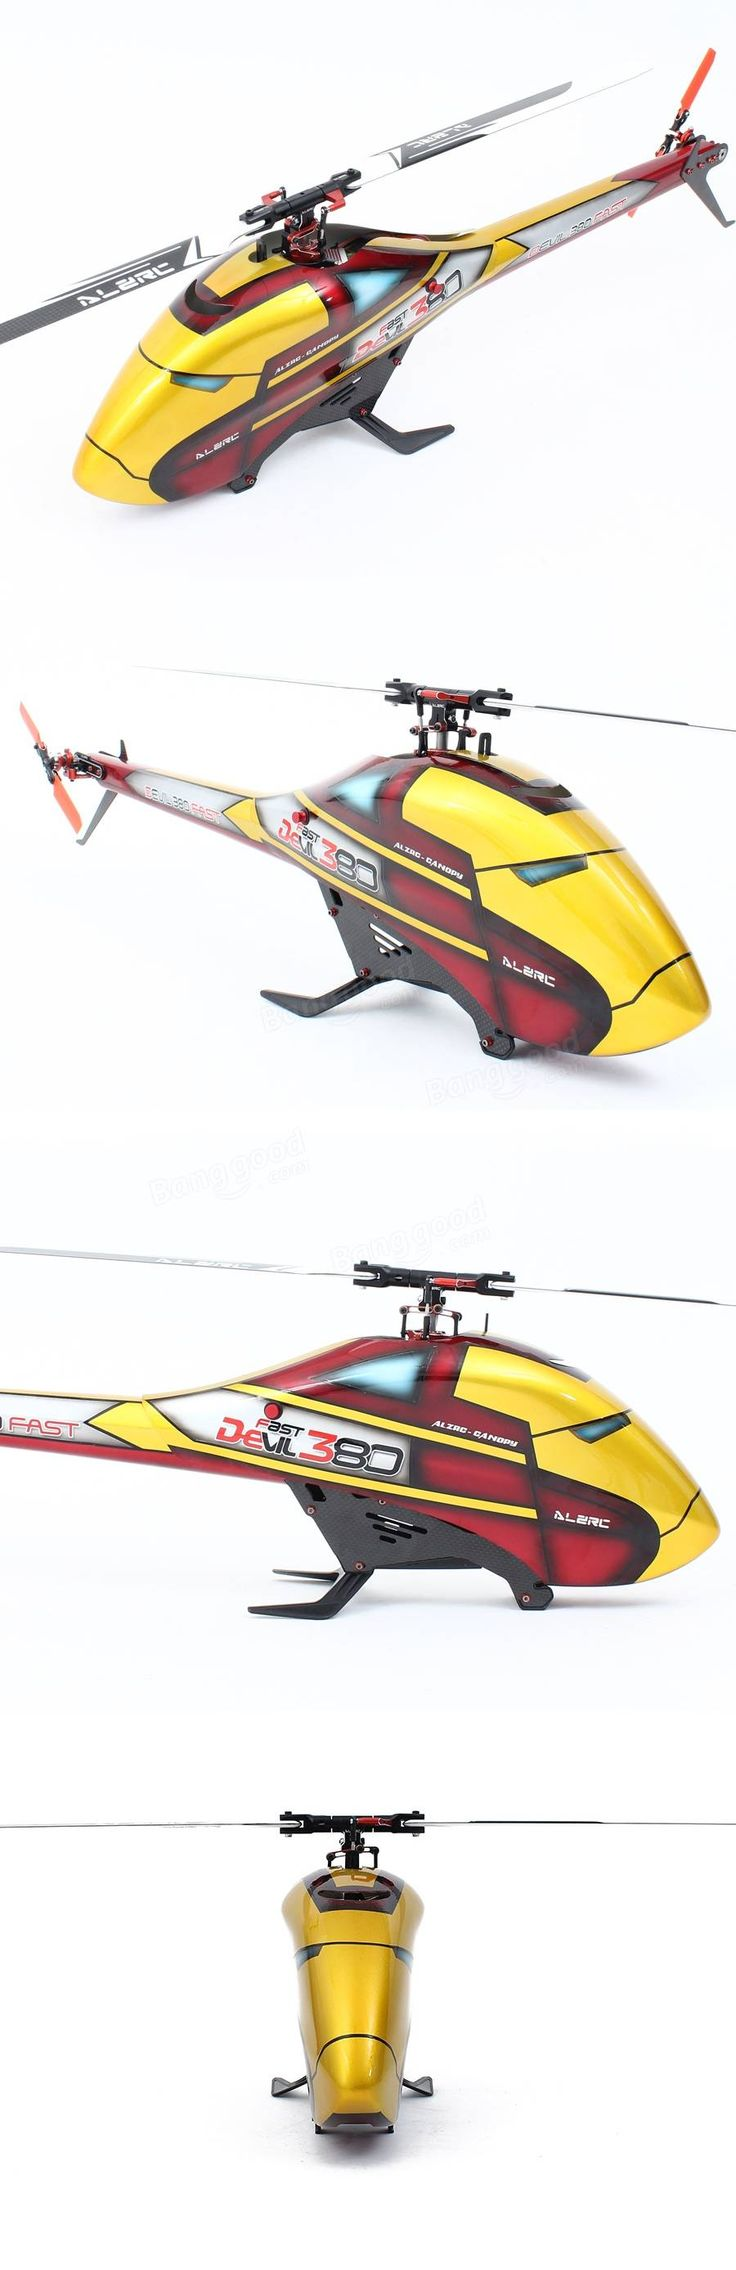 ALZRC Devil 380 FAST RC Helicopter Standard Combo Sale - Banggood.com